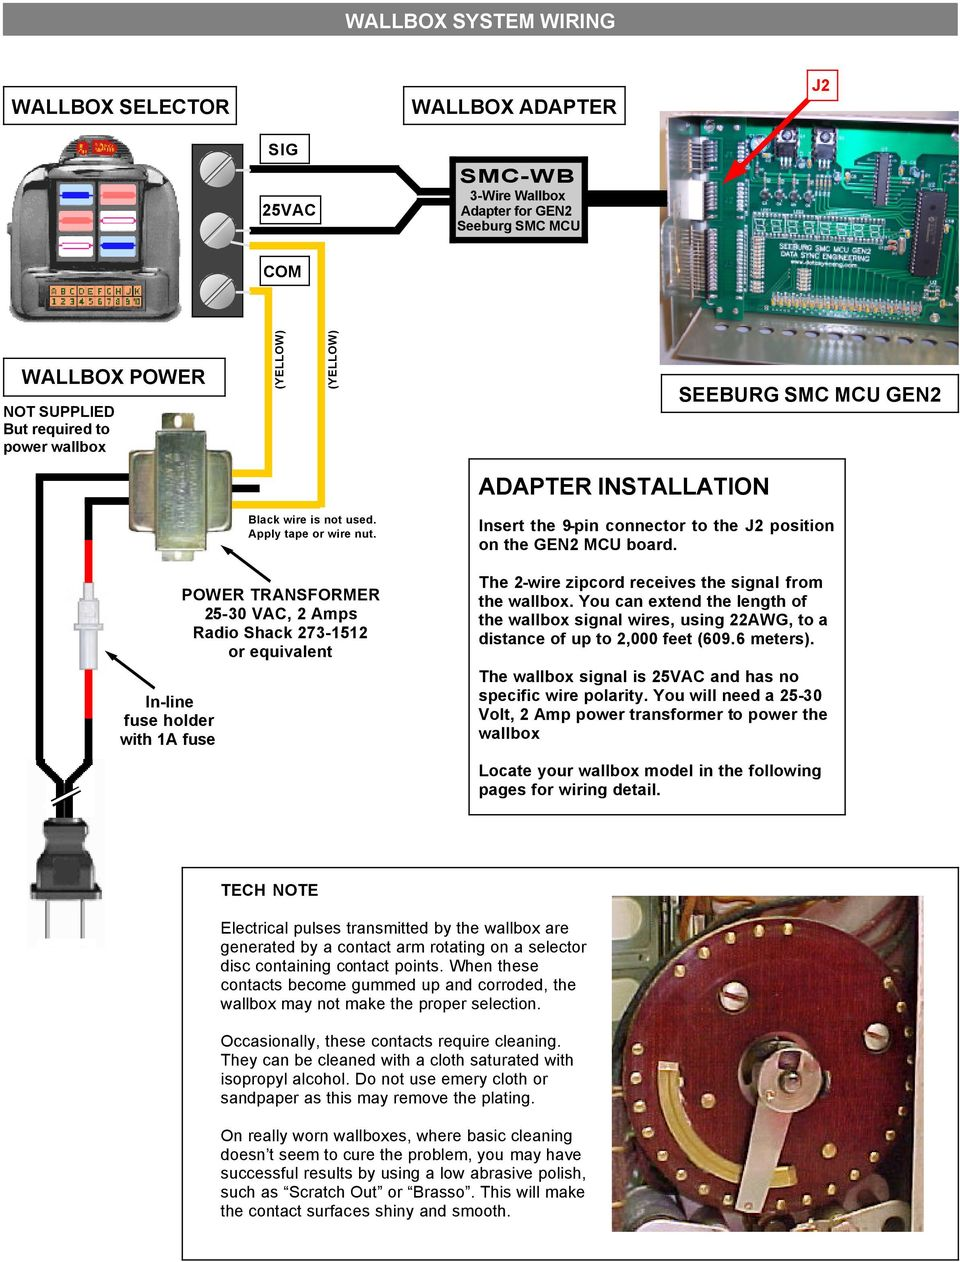 Smc Crossing Arm Wiring Diagram Explained Diagrams Manifold 3 Wire Wallbox Adapter For Seeburg Jukeboxes With The Gen2 Mcu Pdf Ceiling Fans Lights